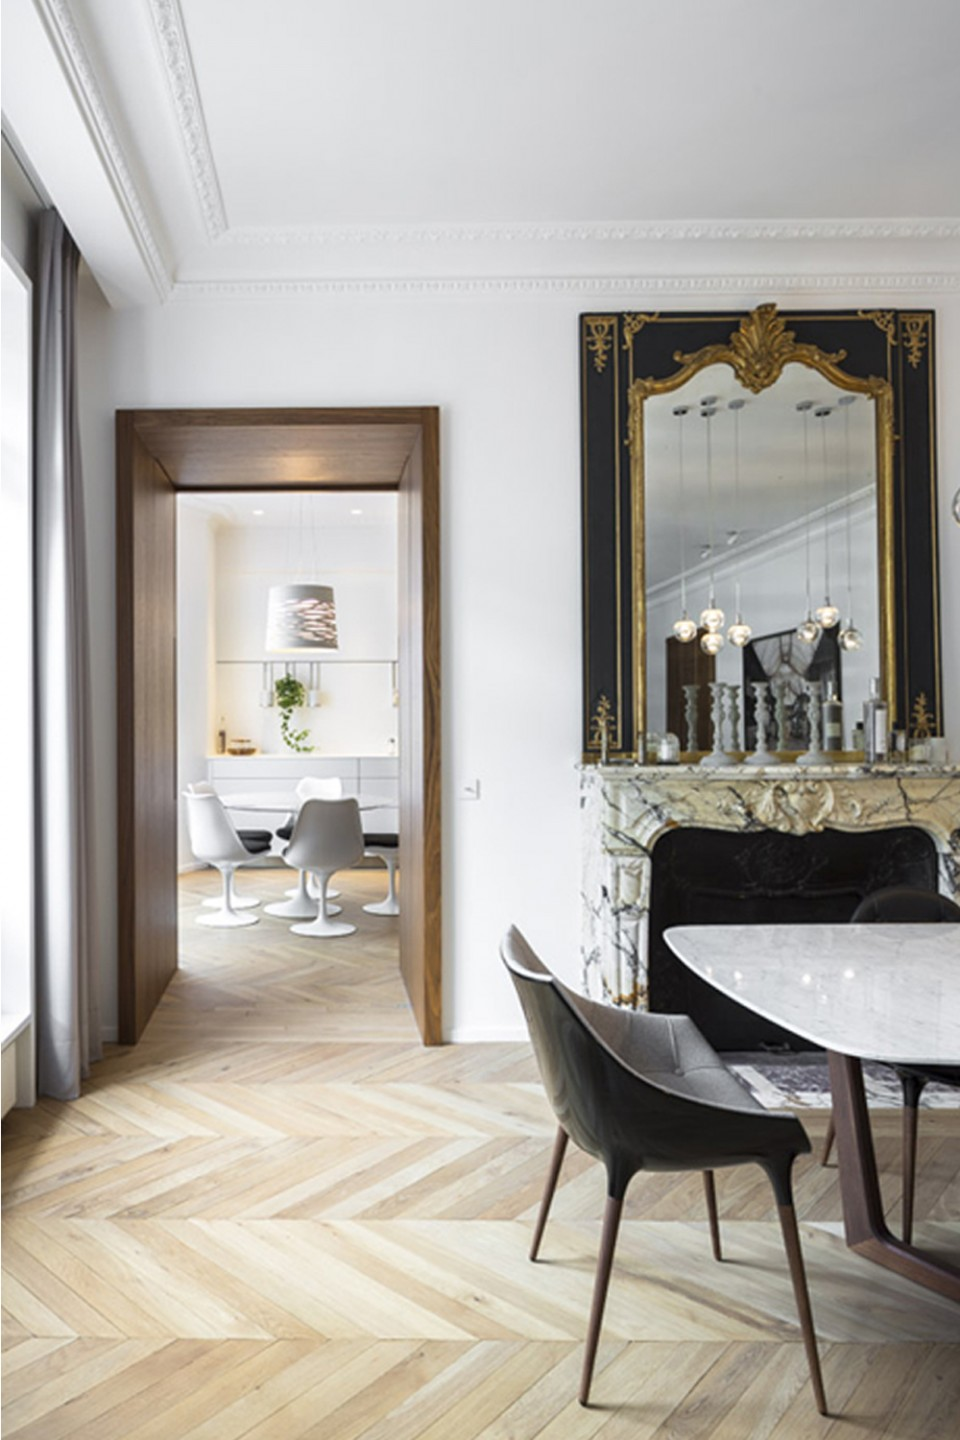 RENOVATION_APPARTEMENT_PARIS_SALON_APRES